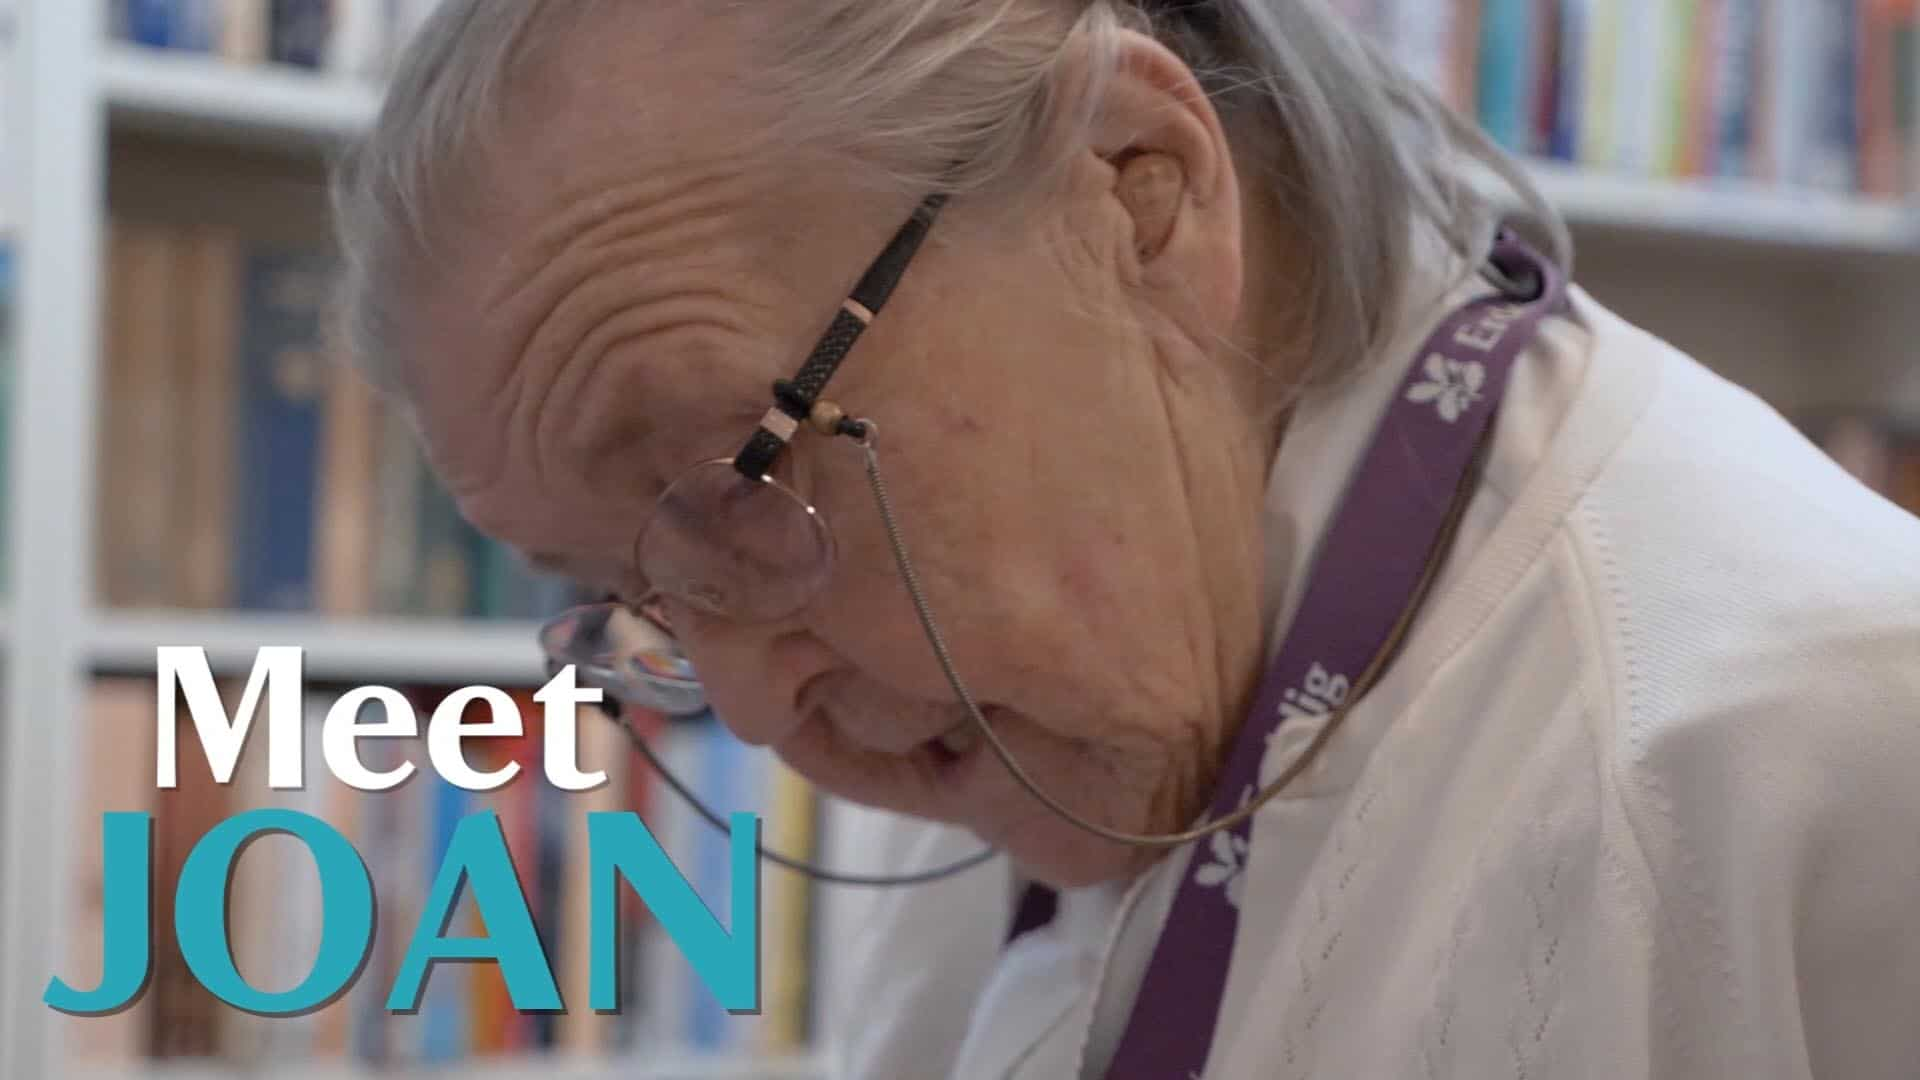 Screenshot from film of volunteer Joan with words 'Meet Joan' on screen